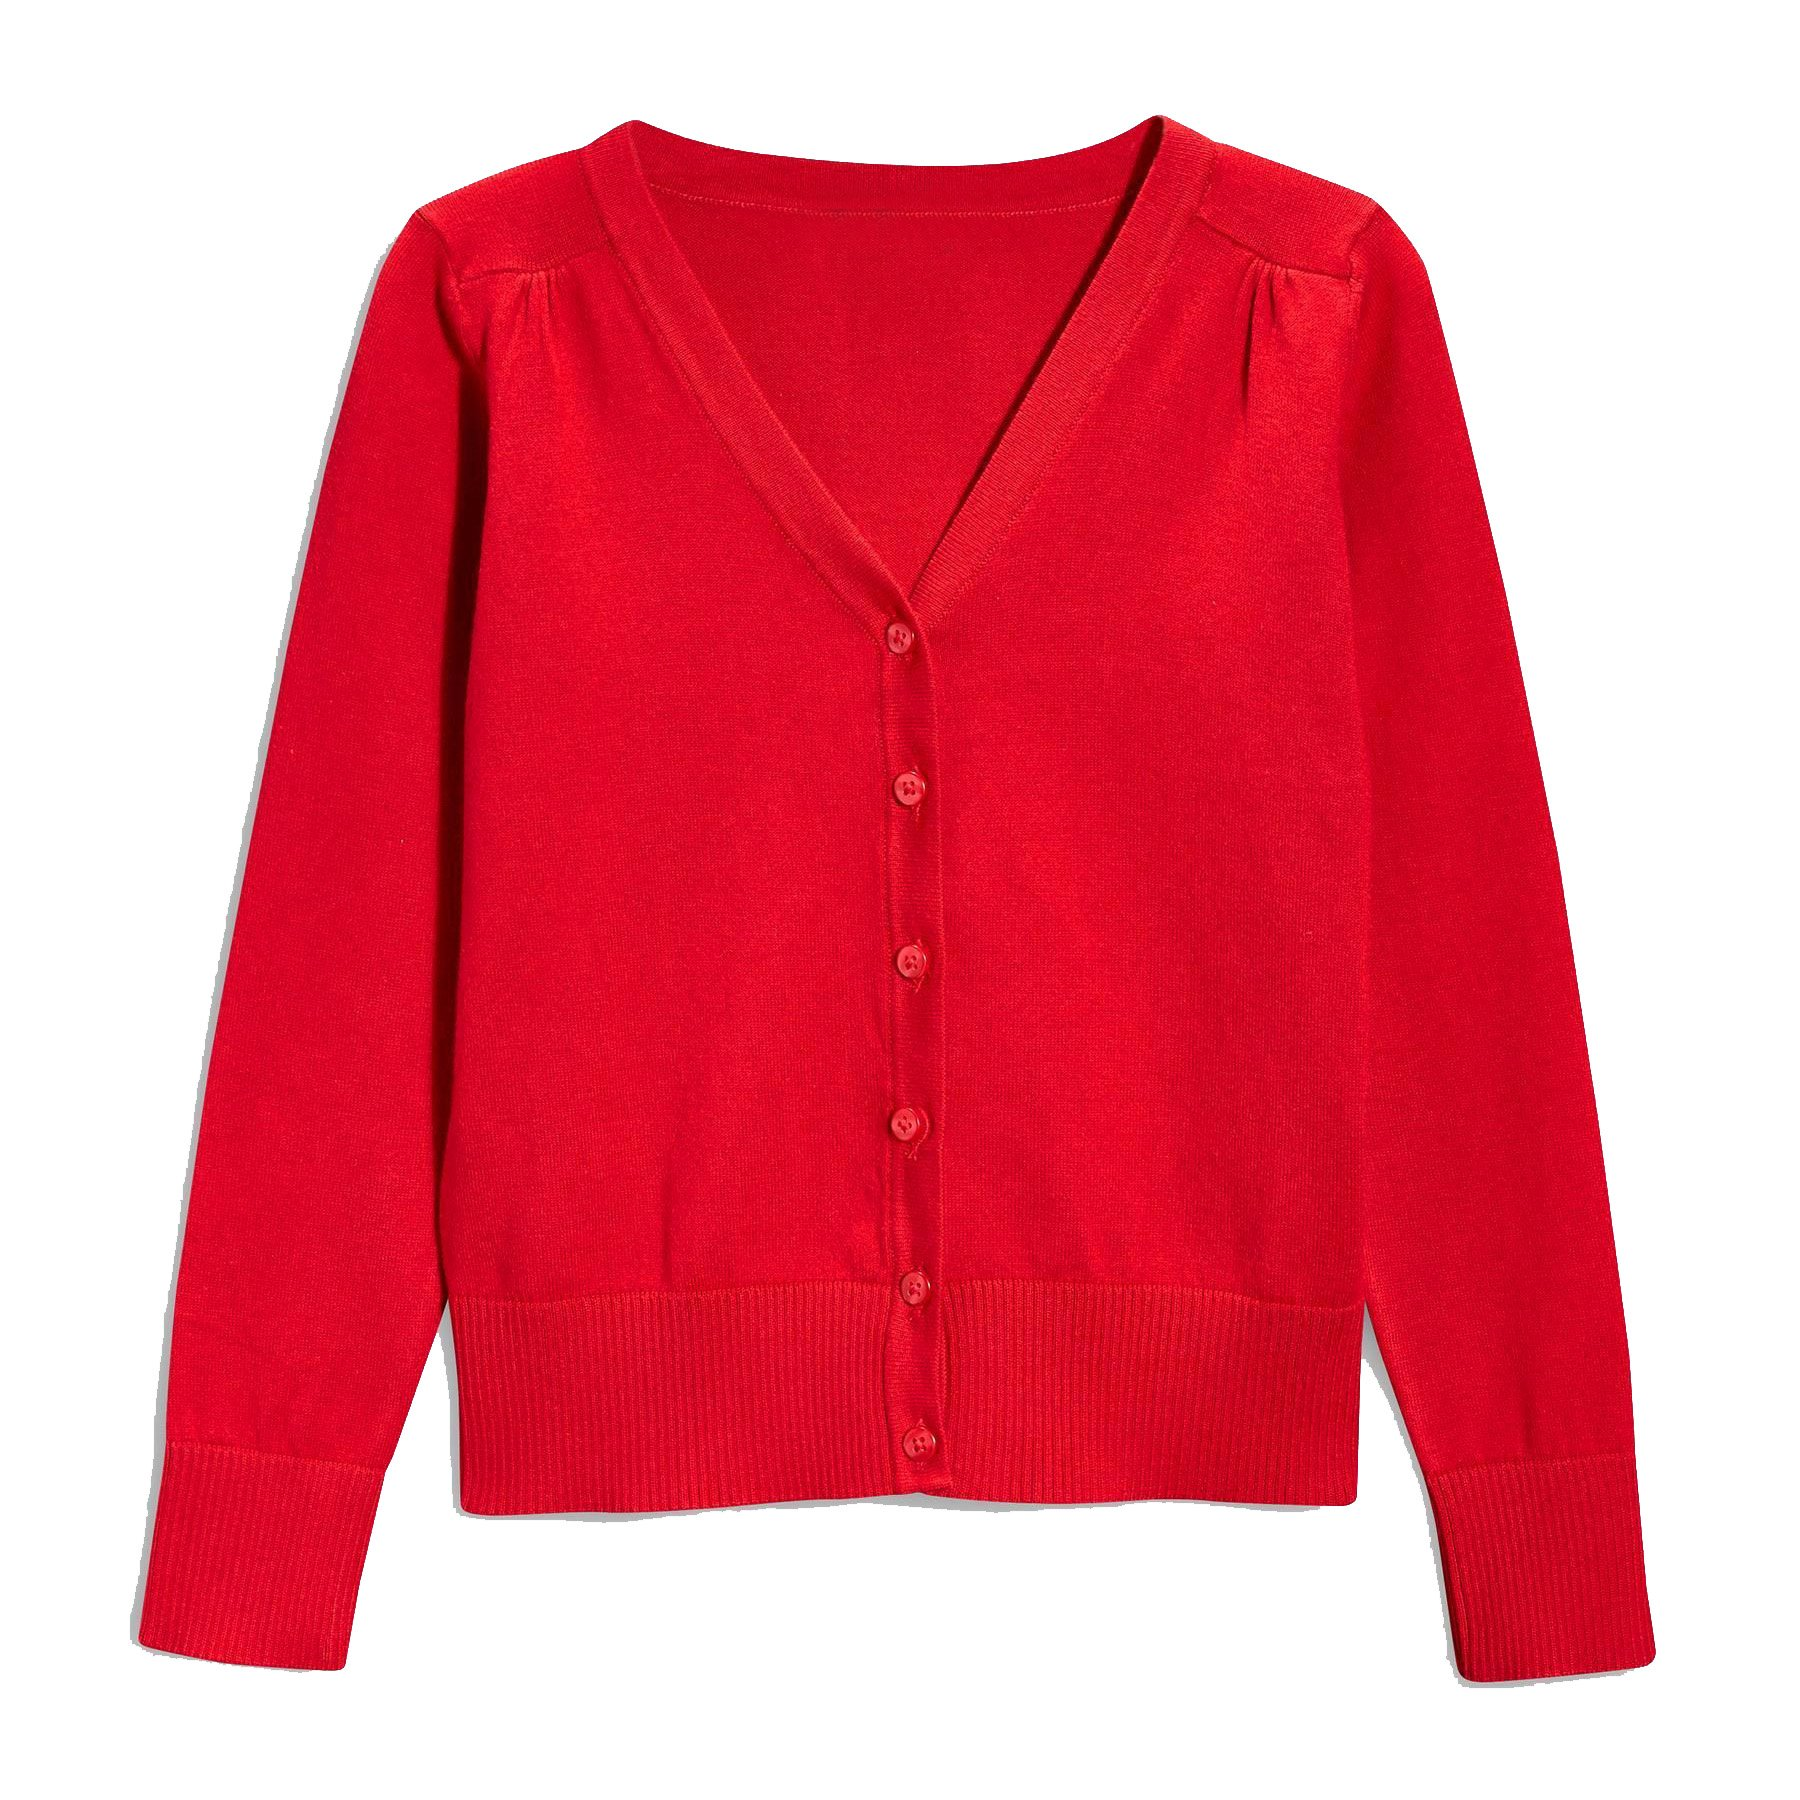 Hollywood Star Fashion Khanomak Kids Girls V Neck Cardigan Sweater (Size 5/6, Red)